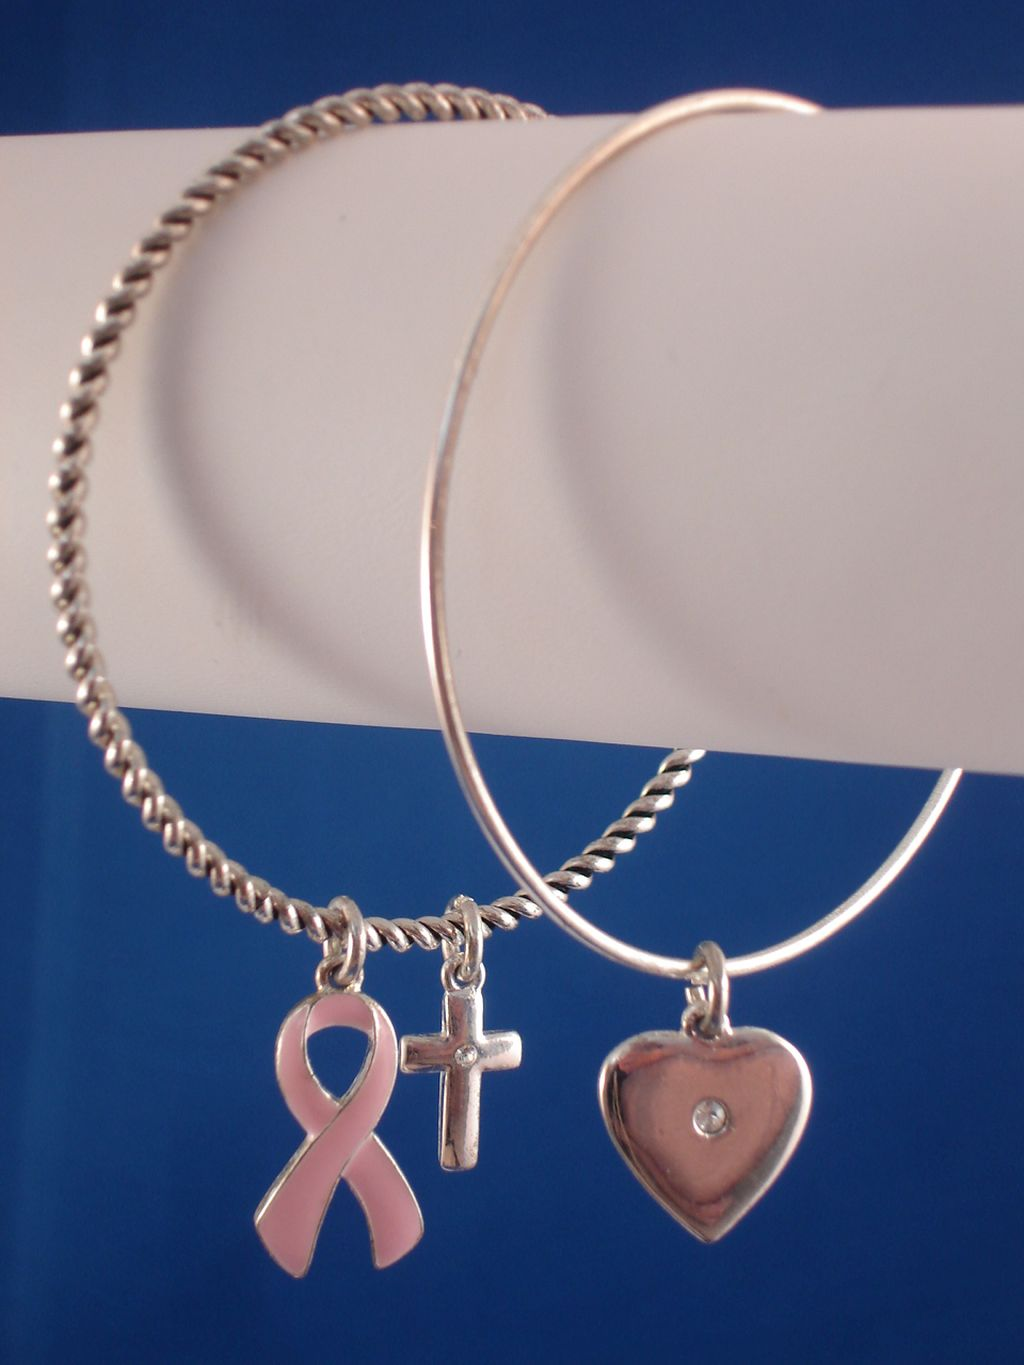 Christian Faith Inspired, Set of Two Bangle Bracelets, Cross, Heart & Breast Cancer Awareness Charms, CZ Stones, Sterling Silver Plated